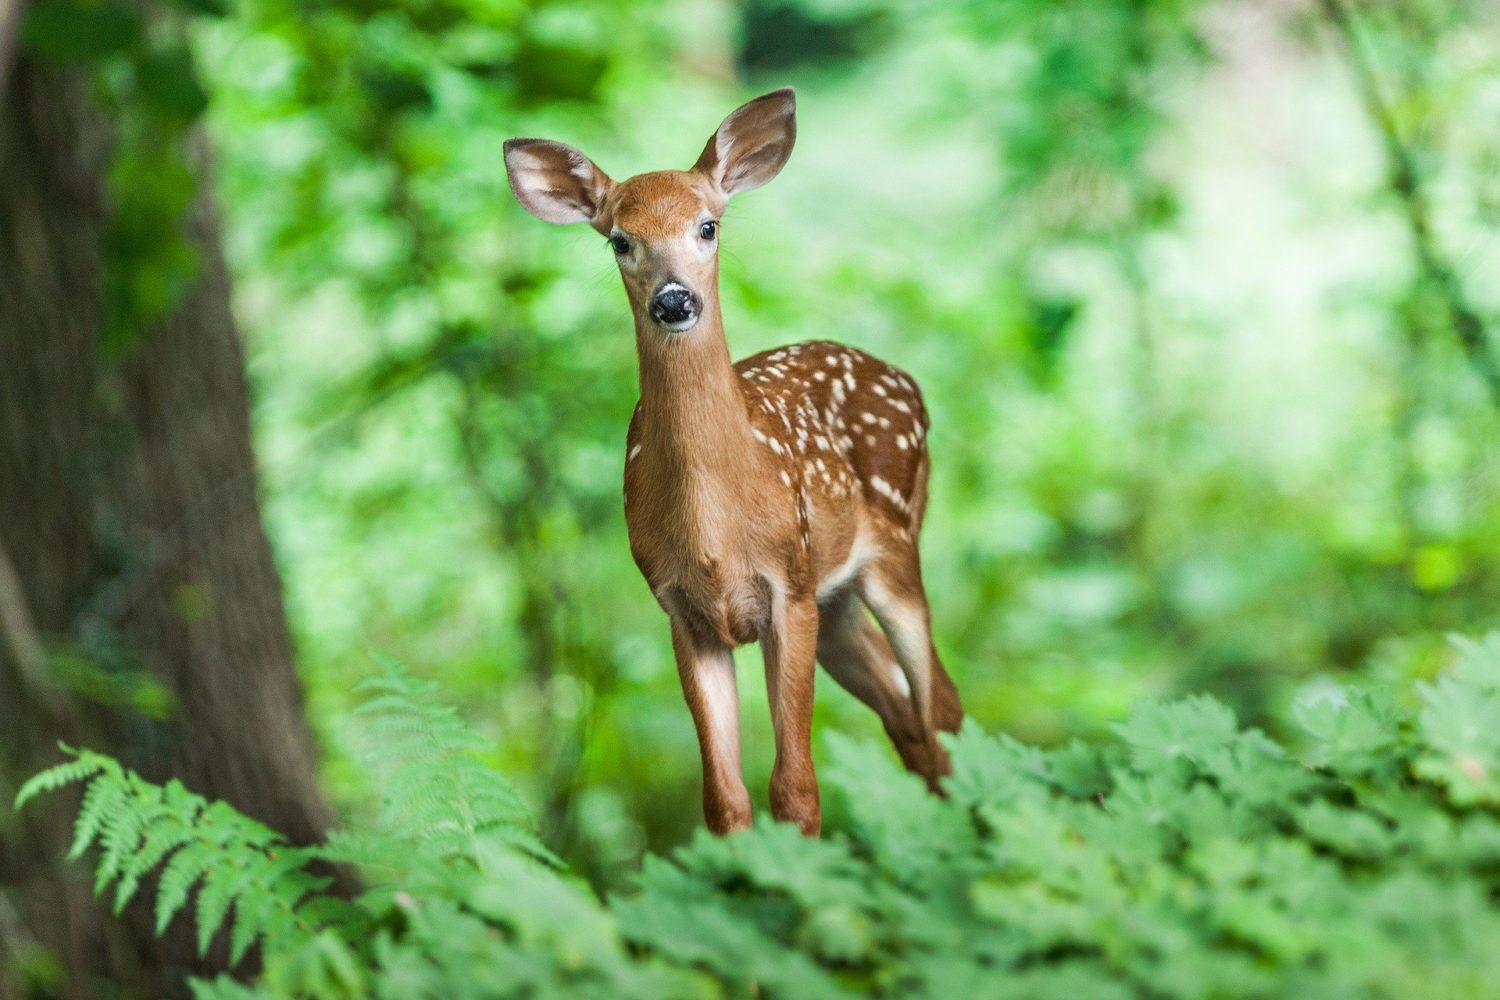 It's not uncommon to see spotted fawns along the trail